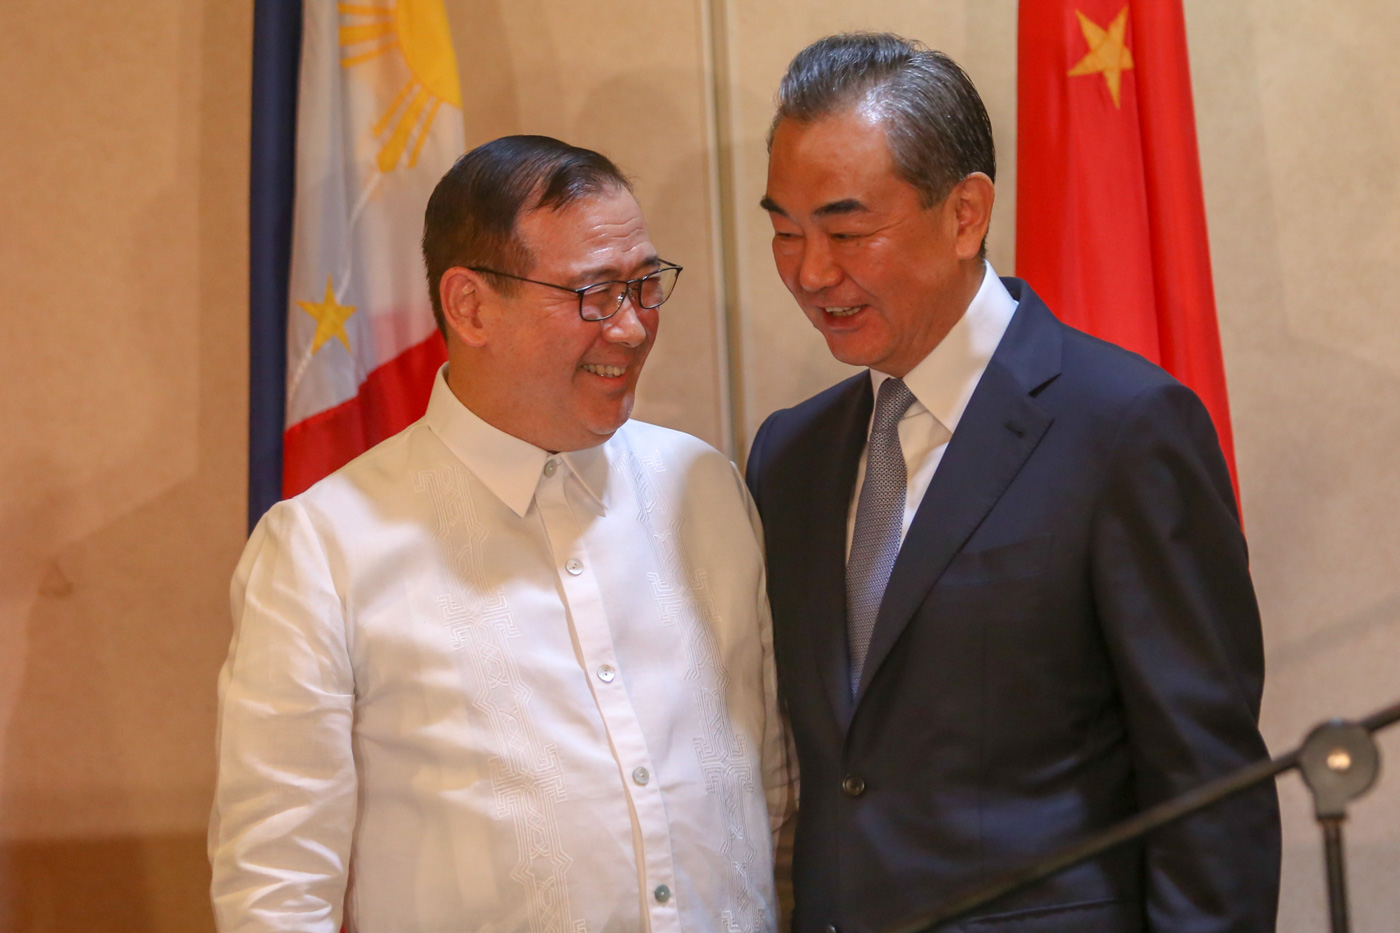 TOP DIPLOMATS. Philippine Foreign Secretary Teodoro Locsin Jr (left) and Chinese State Councilor and Foreign Minister Wang Yi share a light moment during the latter's official visit to Davao City, Philippines, on October 29, 2018. Photo by Manman Dejeto/Rappler